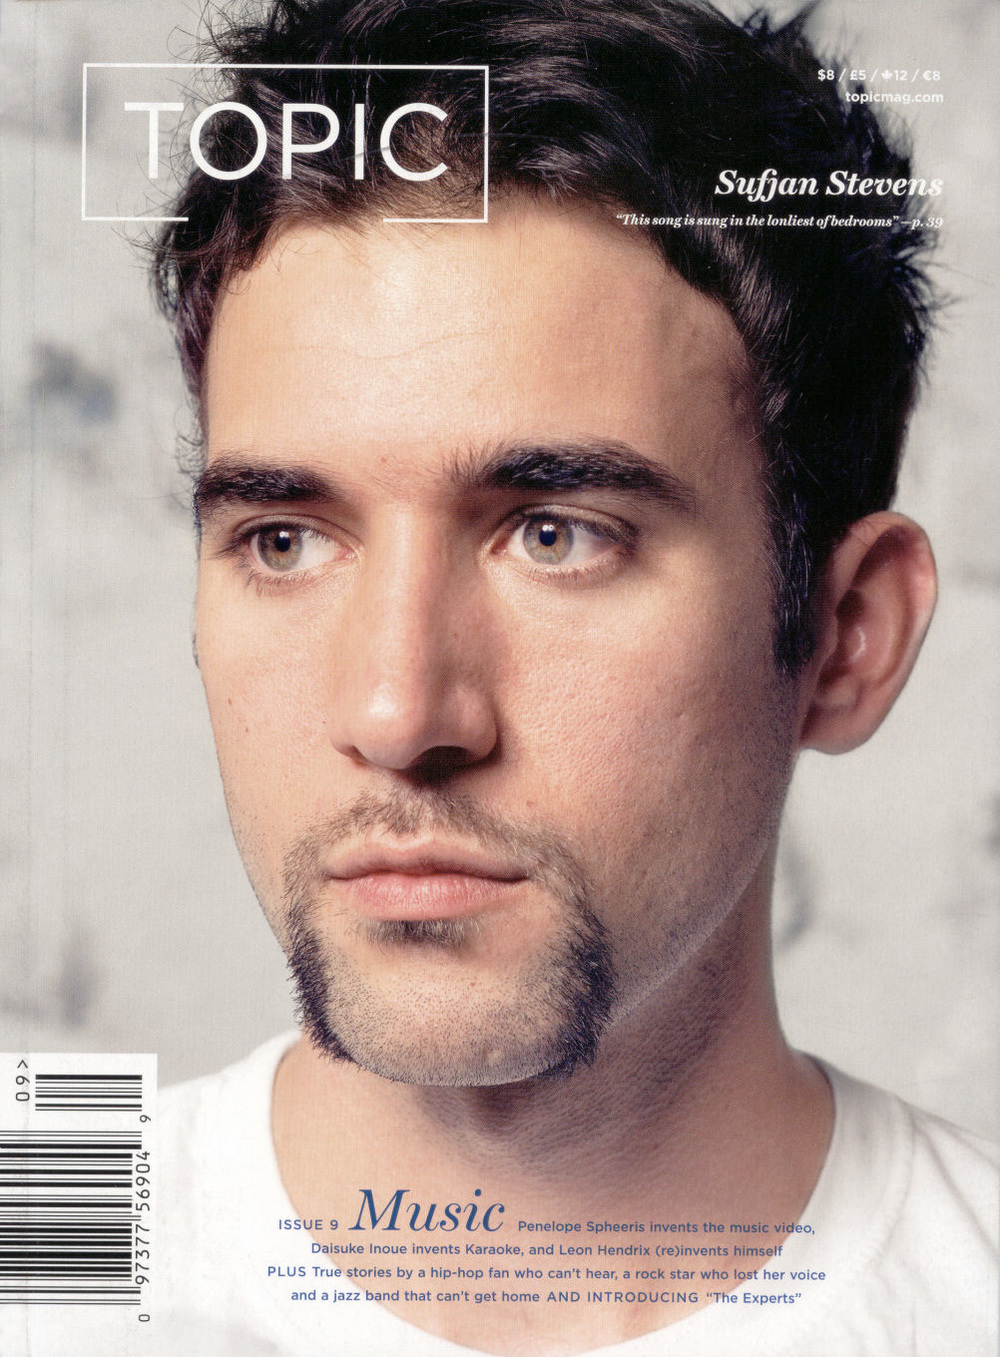 Sufjan Stevens, Topic Magazine.